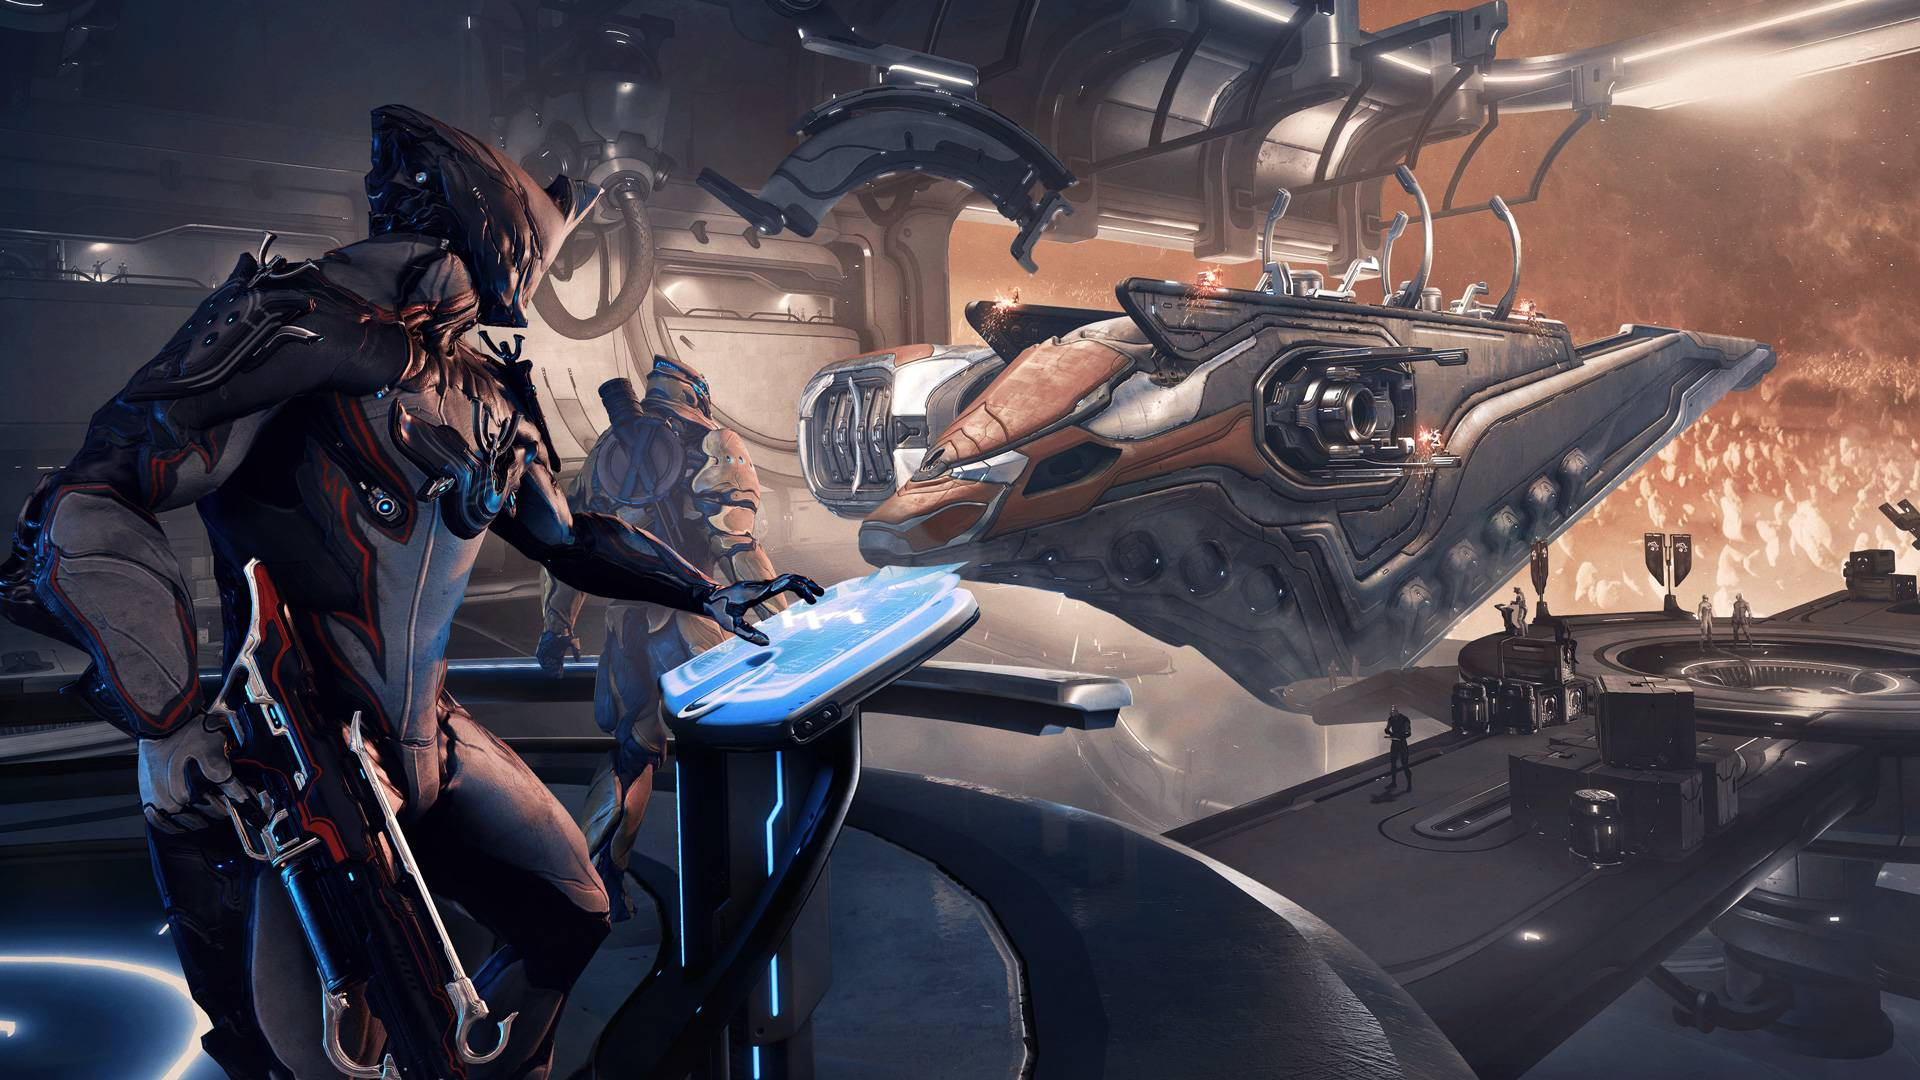 Warframe players get to work building space battleships